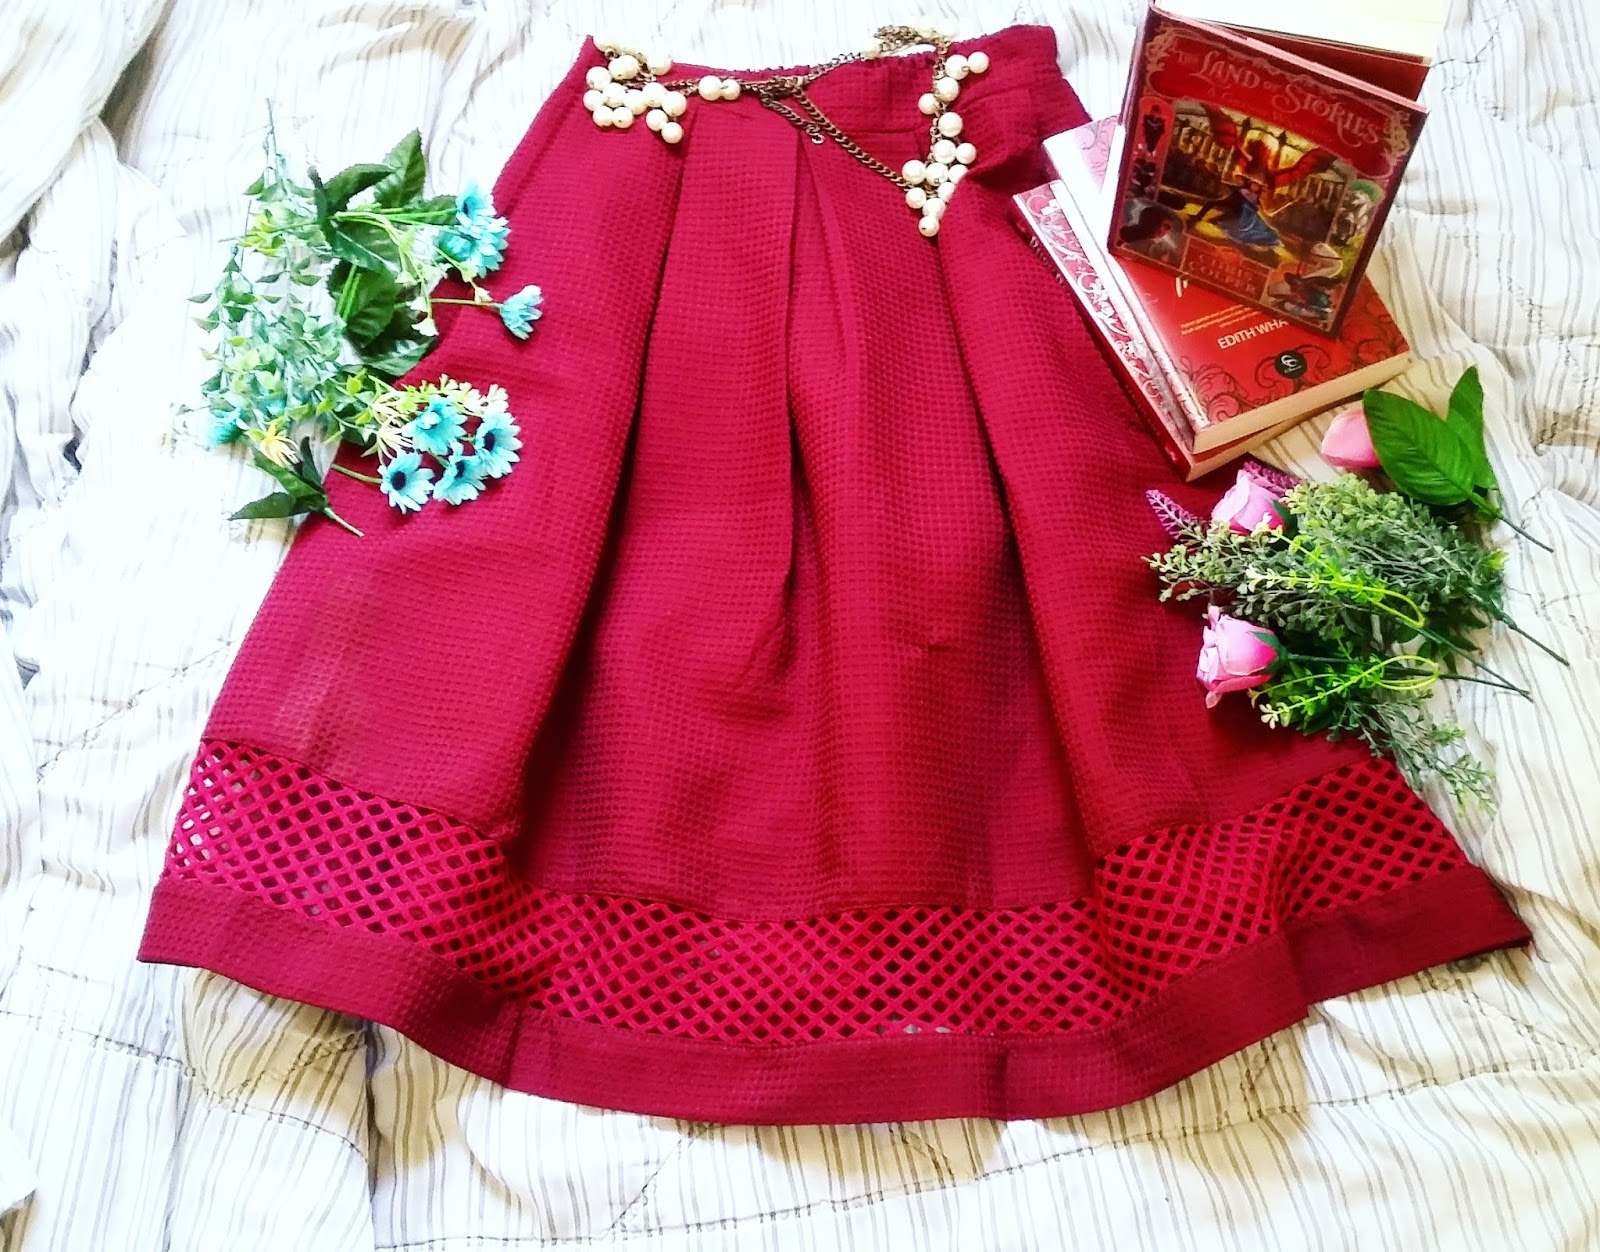 Fashion I Bought A New Skirts Luch Luch Craft Bloglovin